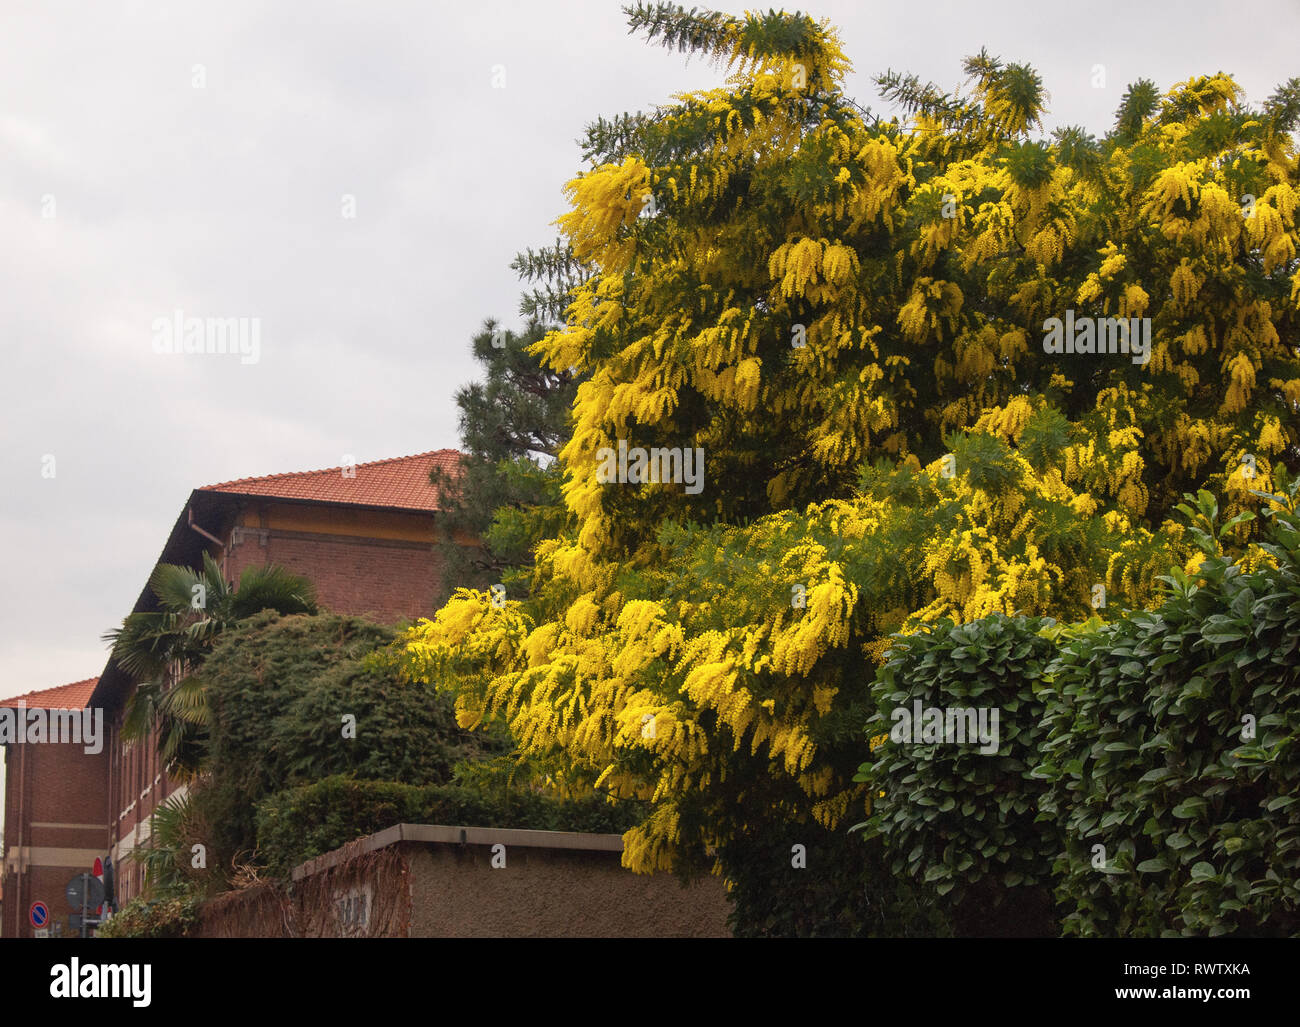 a mimosa tree in a garden with its intense colors - Stock Image